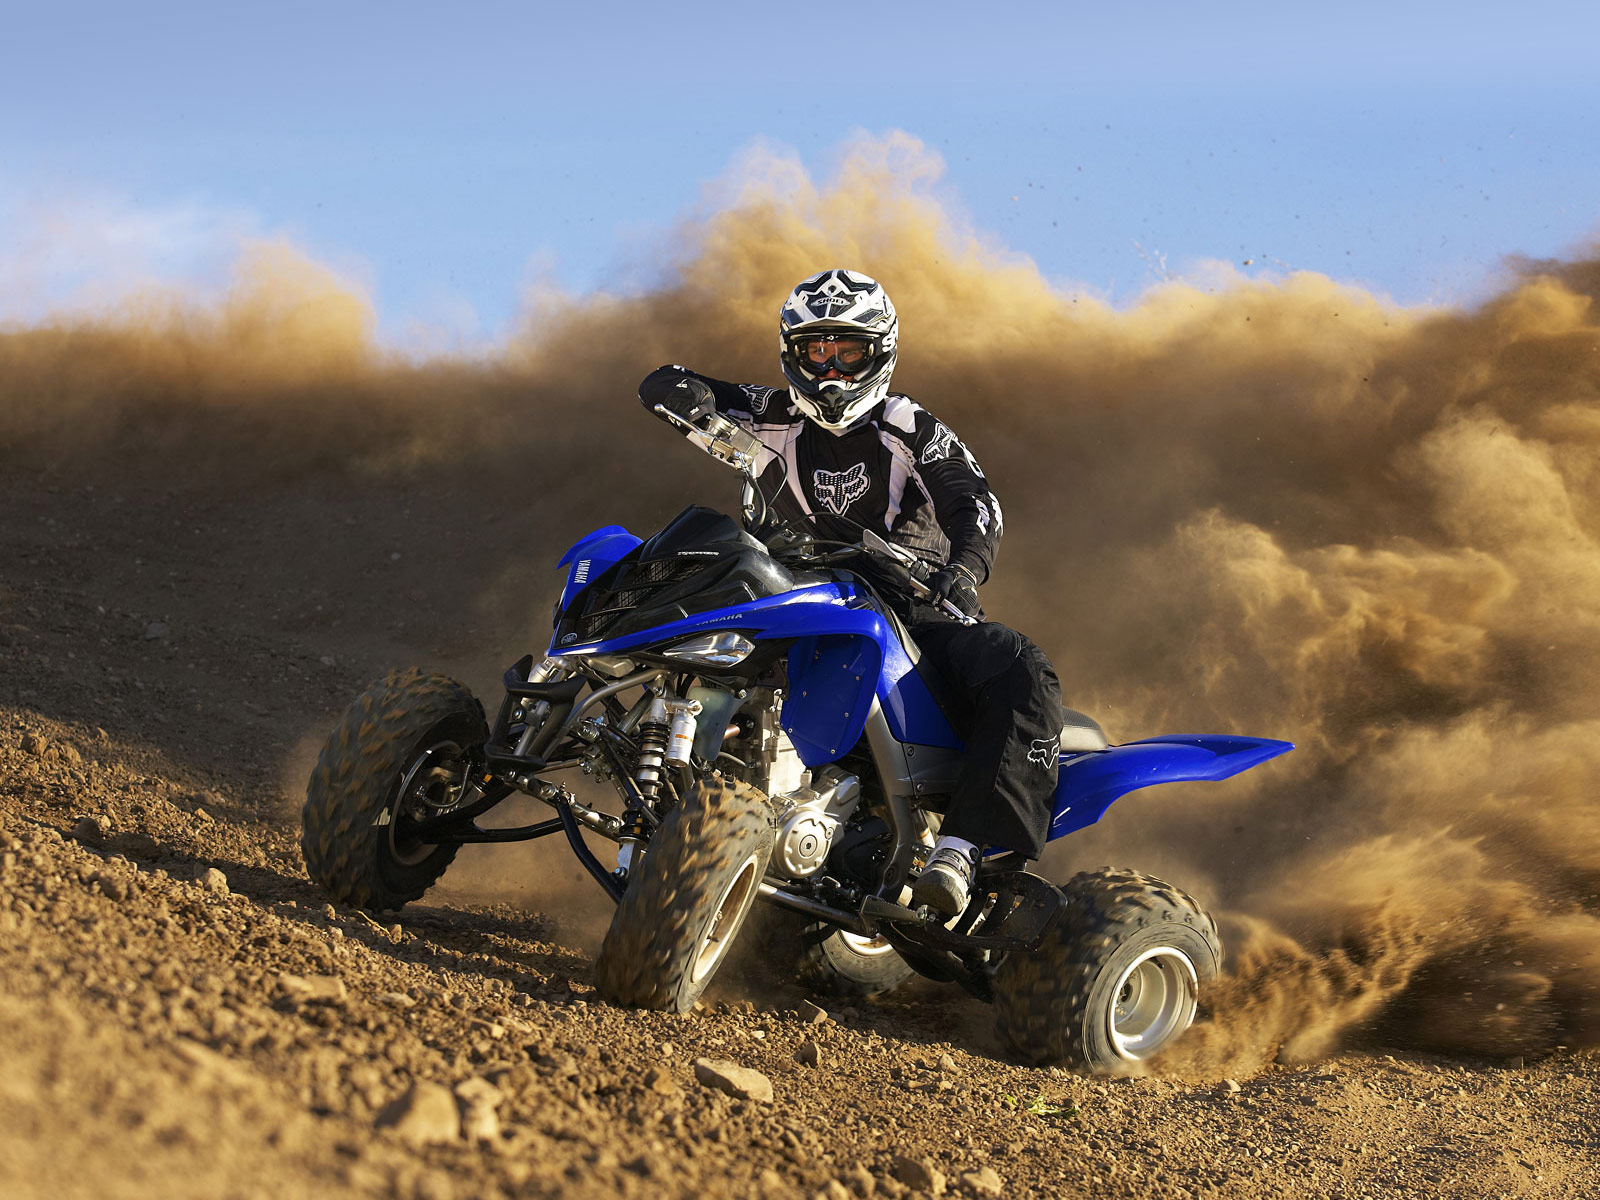 RAPTOR atv quad offroad motorbike bike dirtbike g wallpaper background 1600x1200